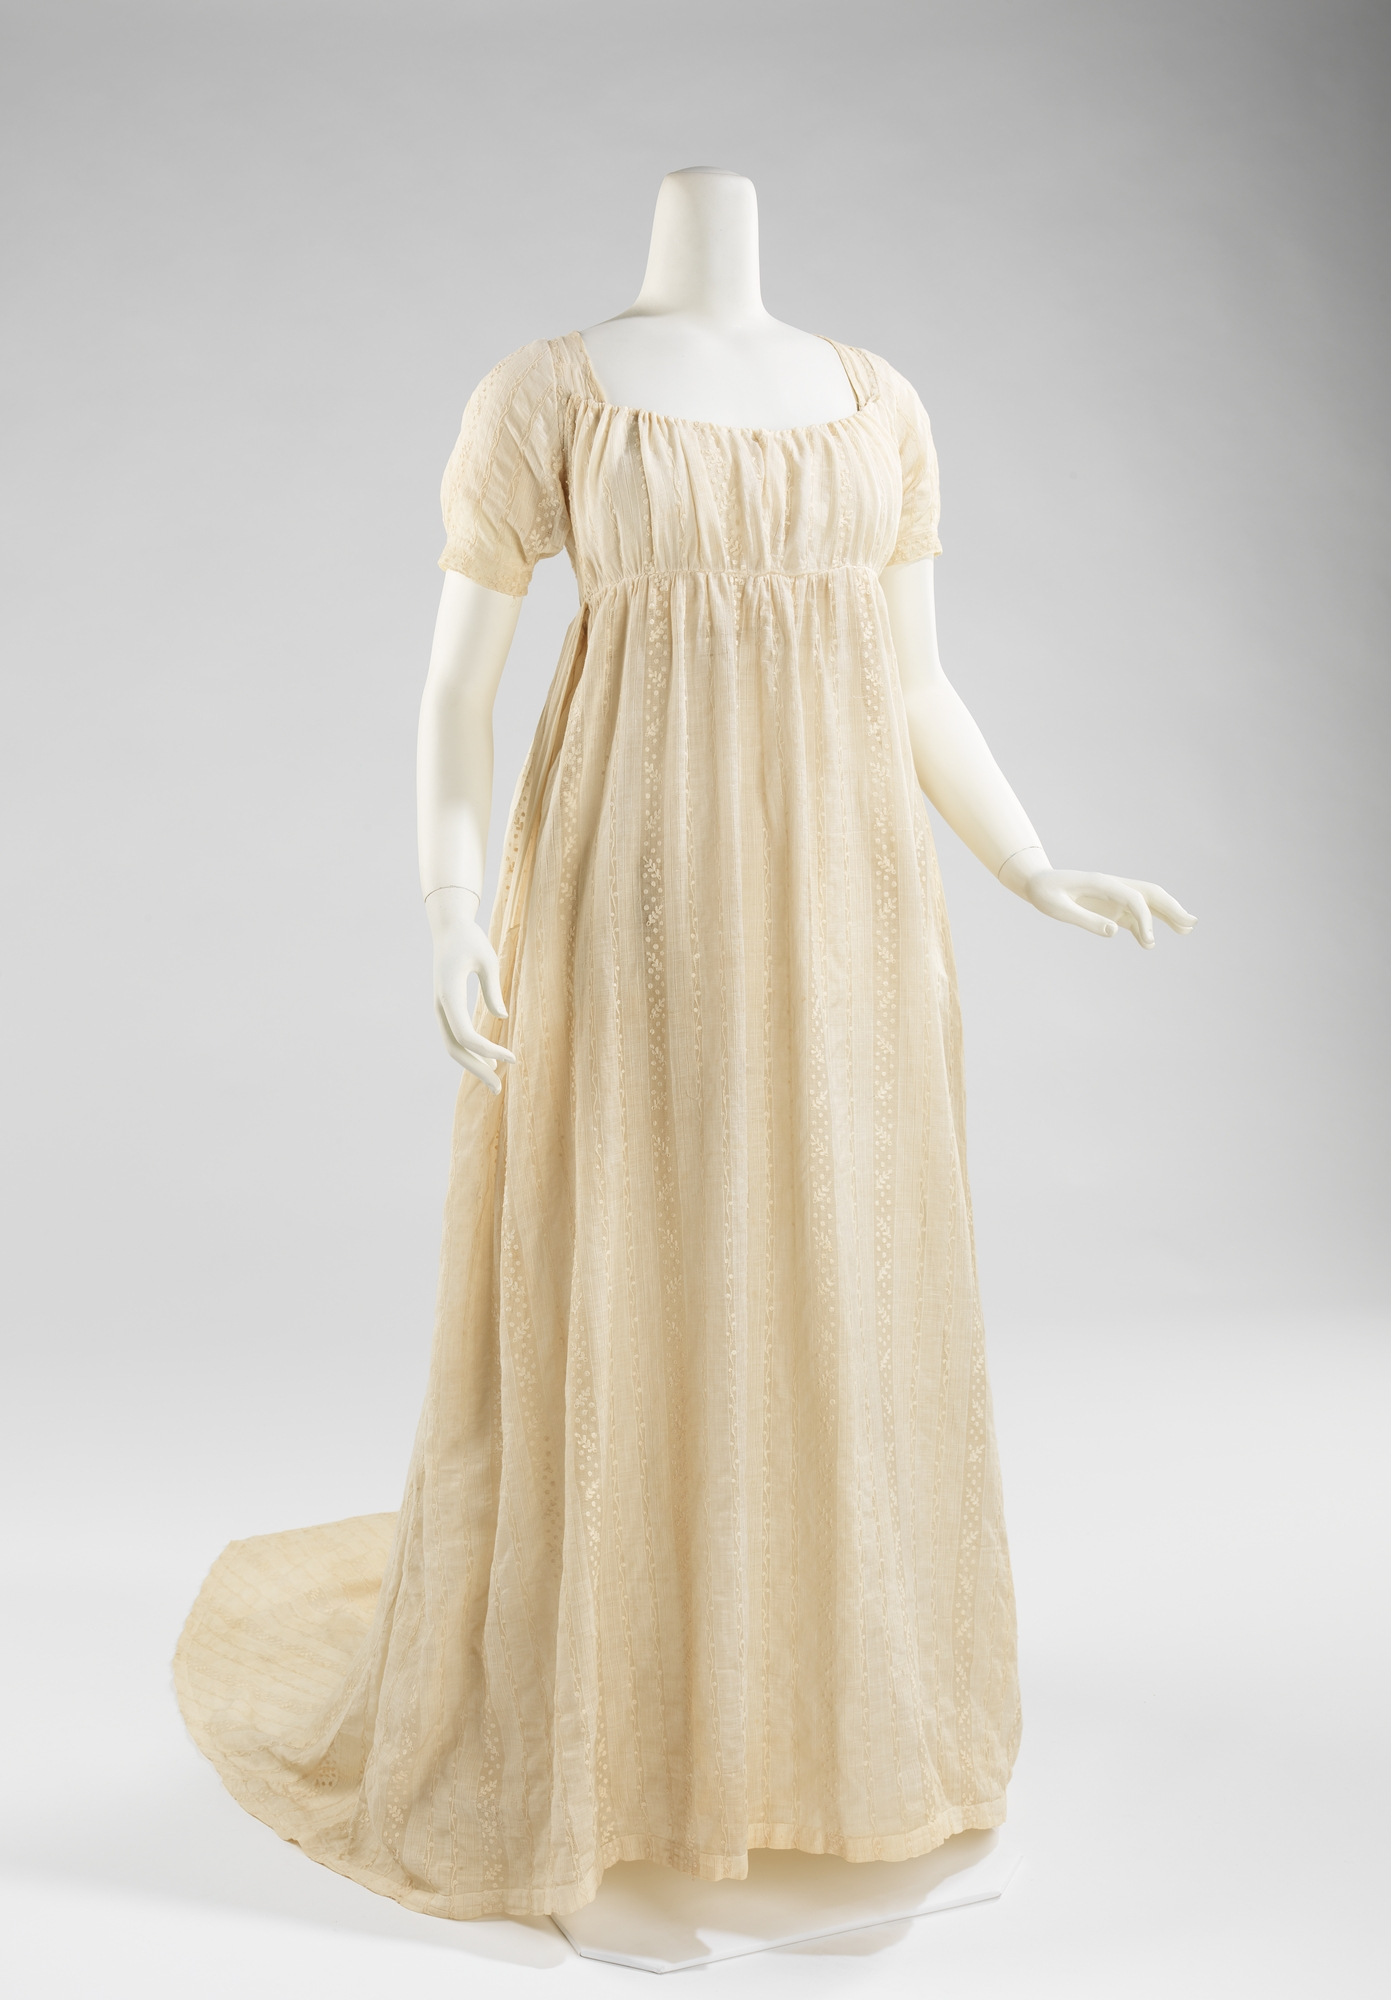 Cotton and Linen Dress with Empire Silhouette (c. 1800-1805) [Source] & Womenu0027s Fashion During and After the French Revolution (1790 to 1810 ...